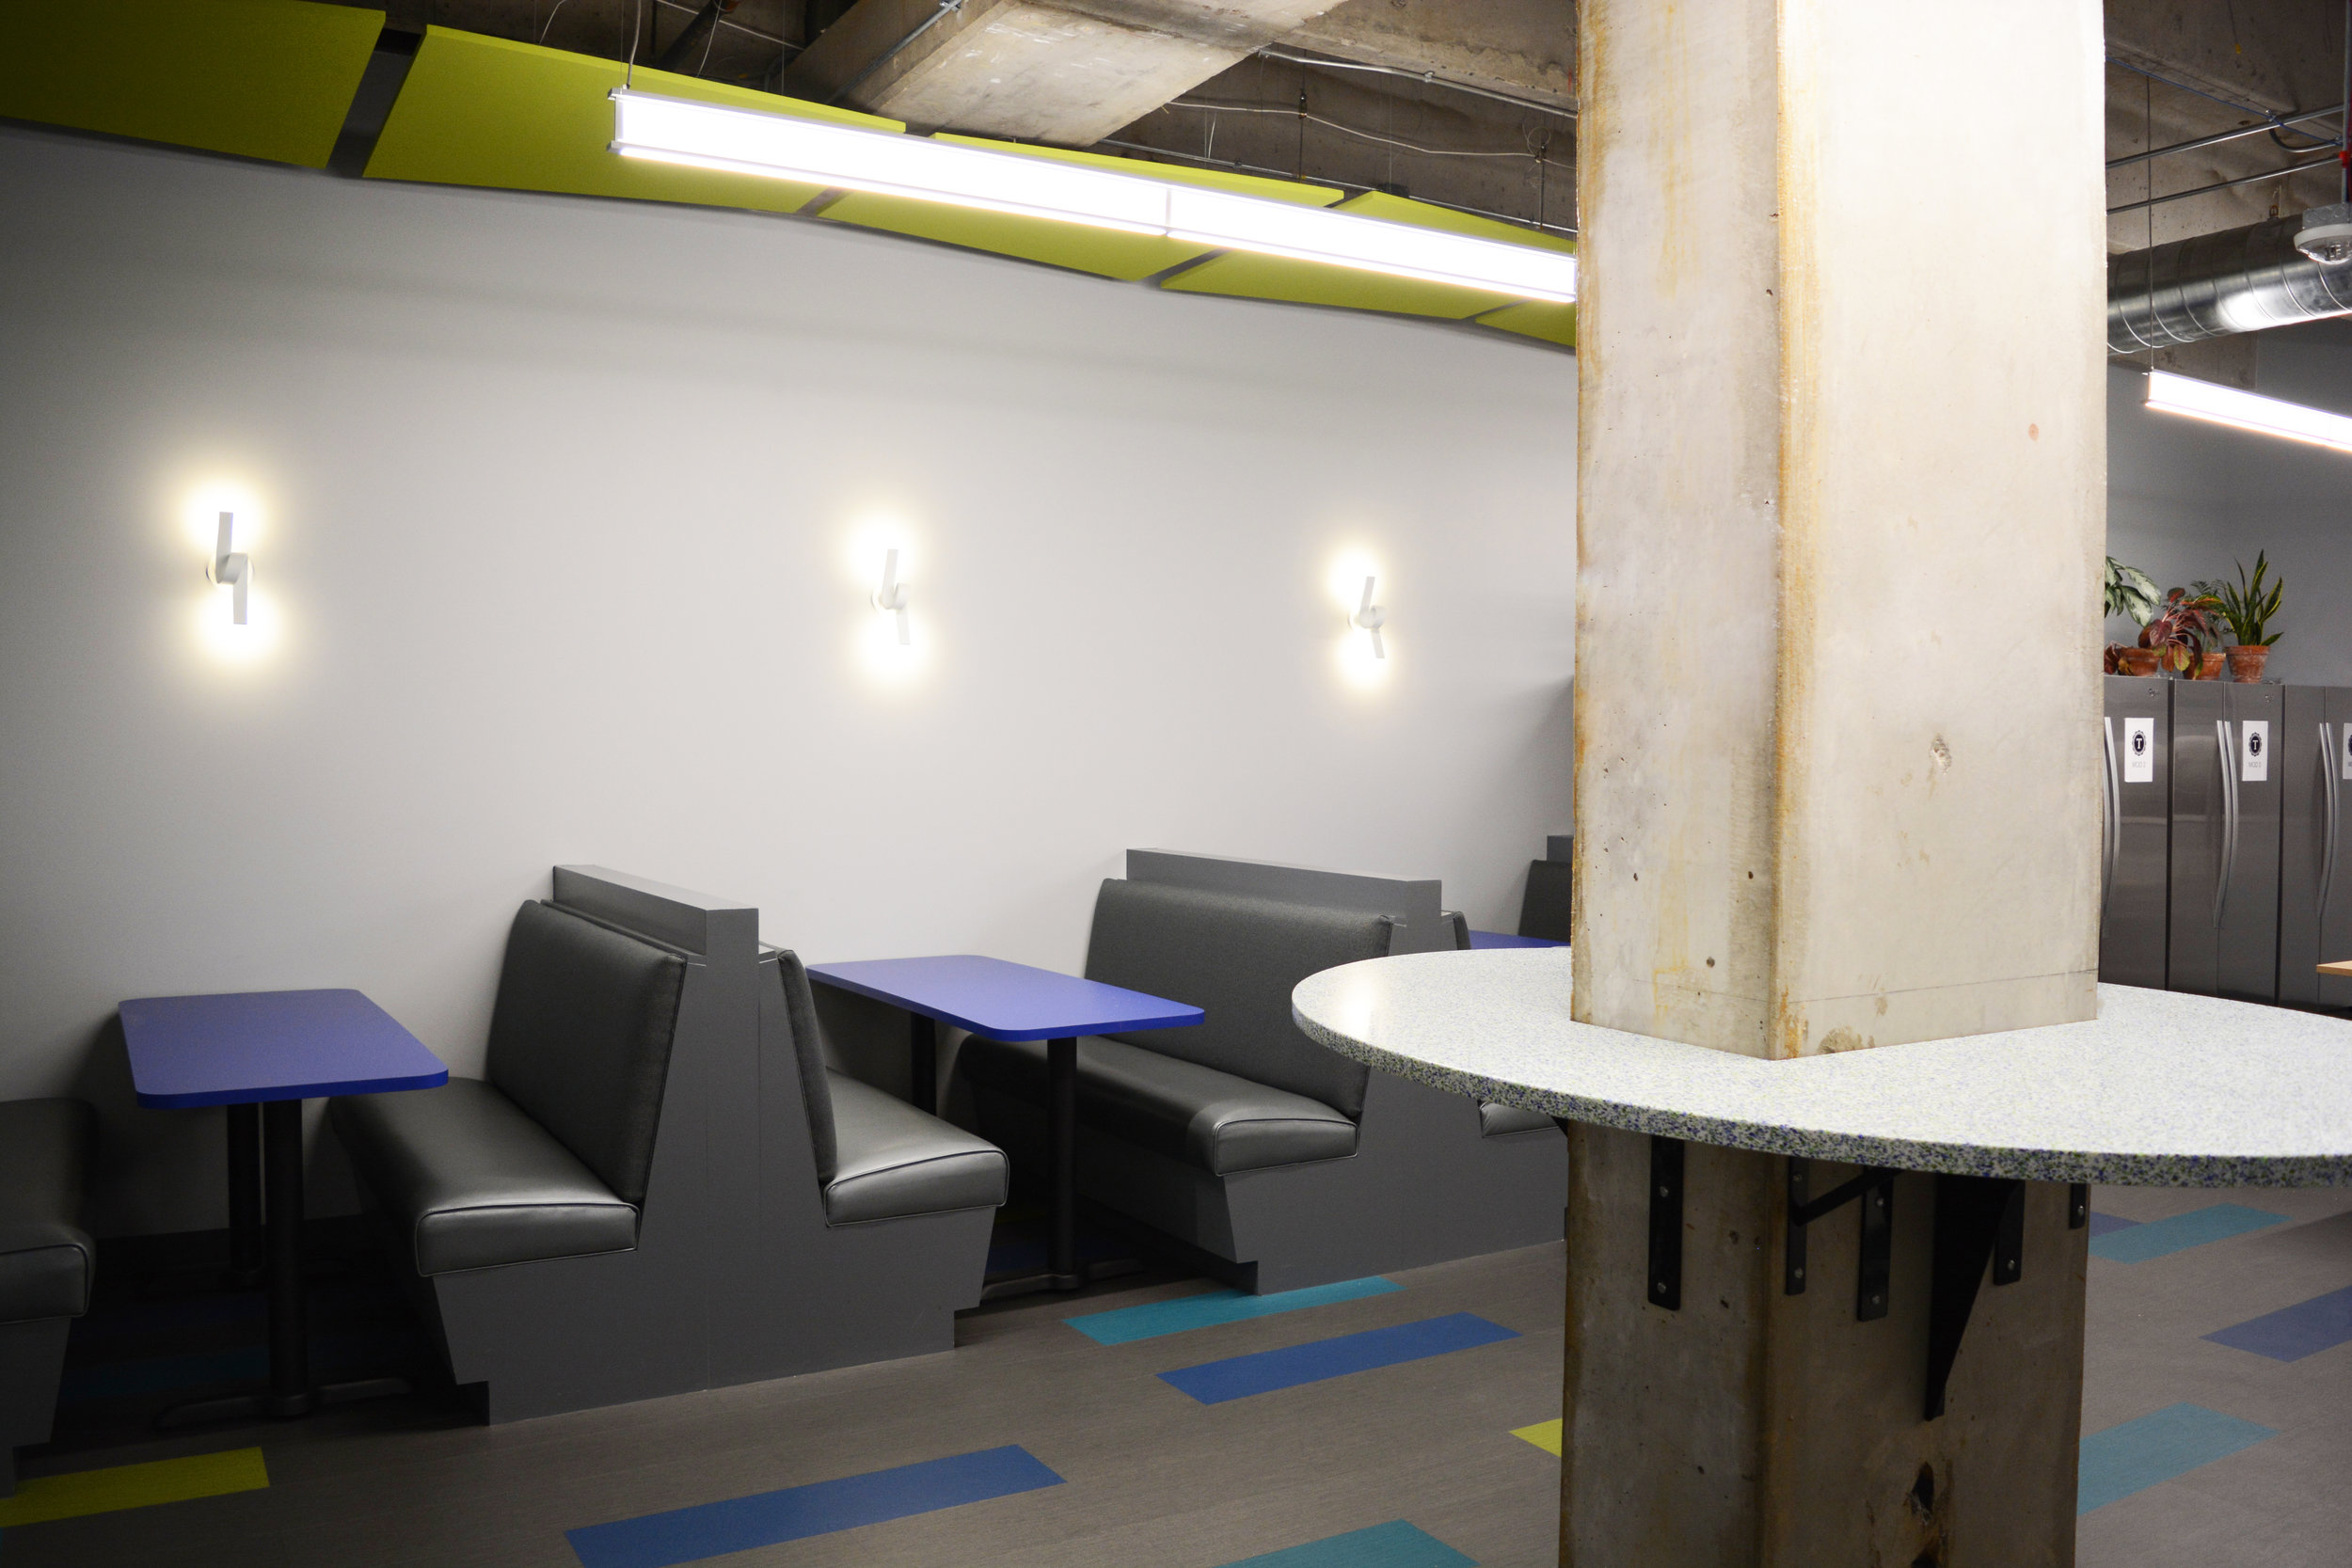 Turing is not the typical higher education campus but that didn't deter us from providing some campus style. The break room includes built-in banquettes and recycled glass countertops that enhance the bright color palette of the space by utilizing green and blue glass chips.